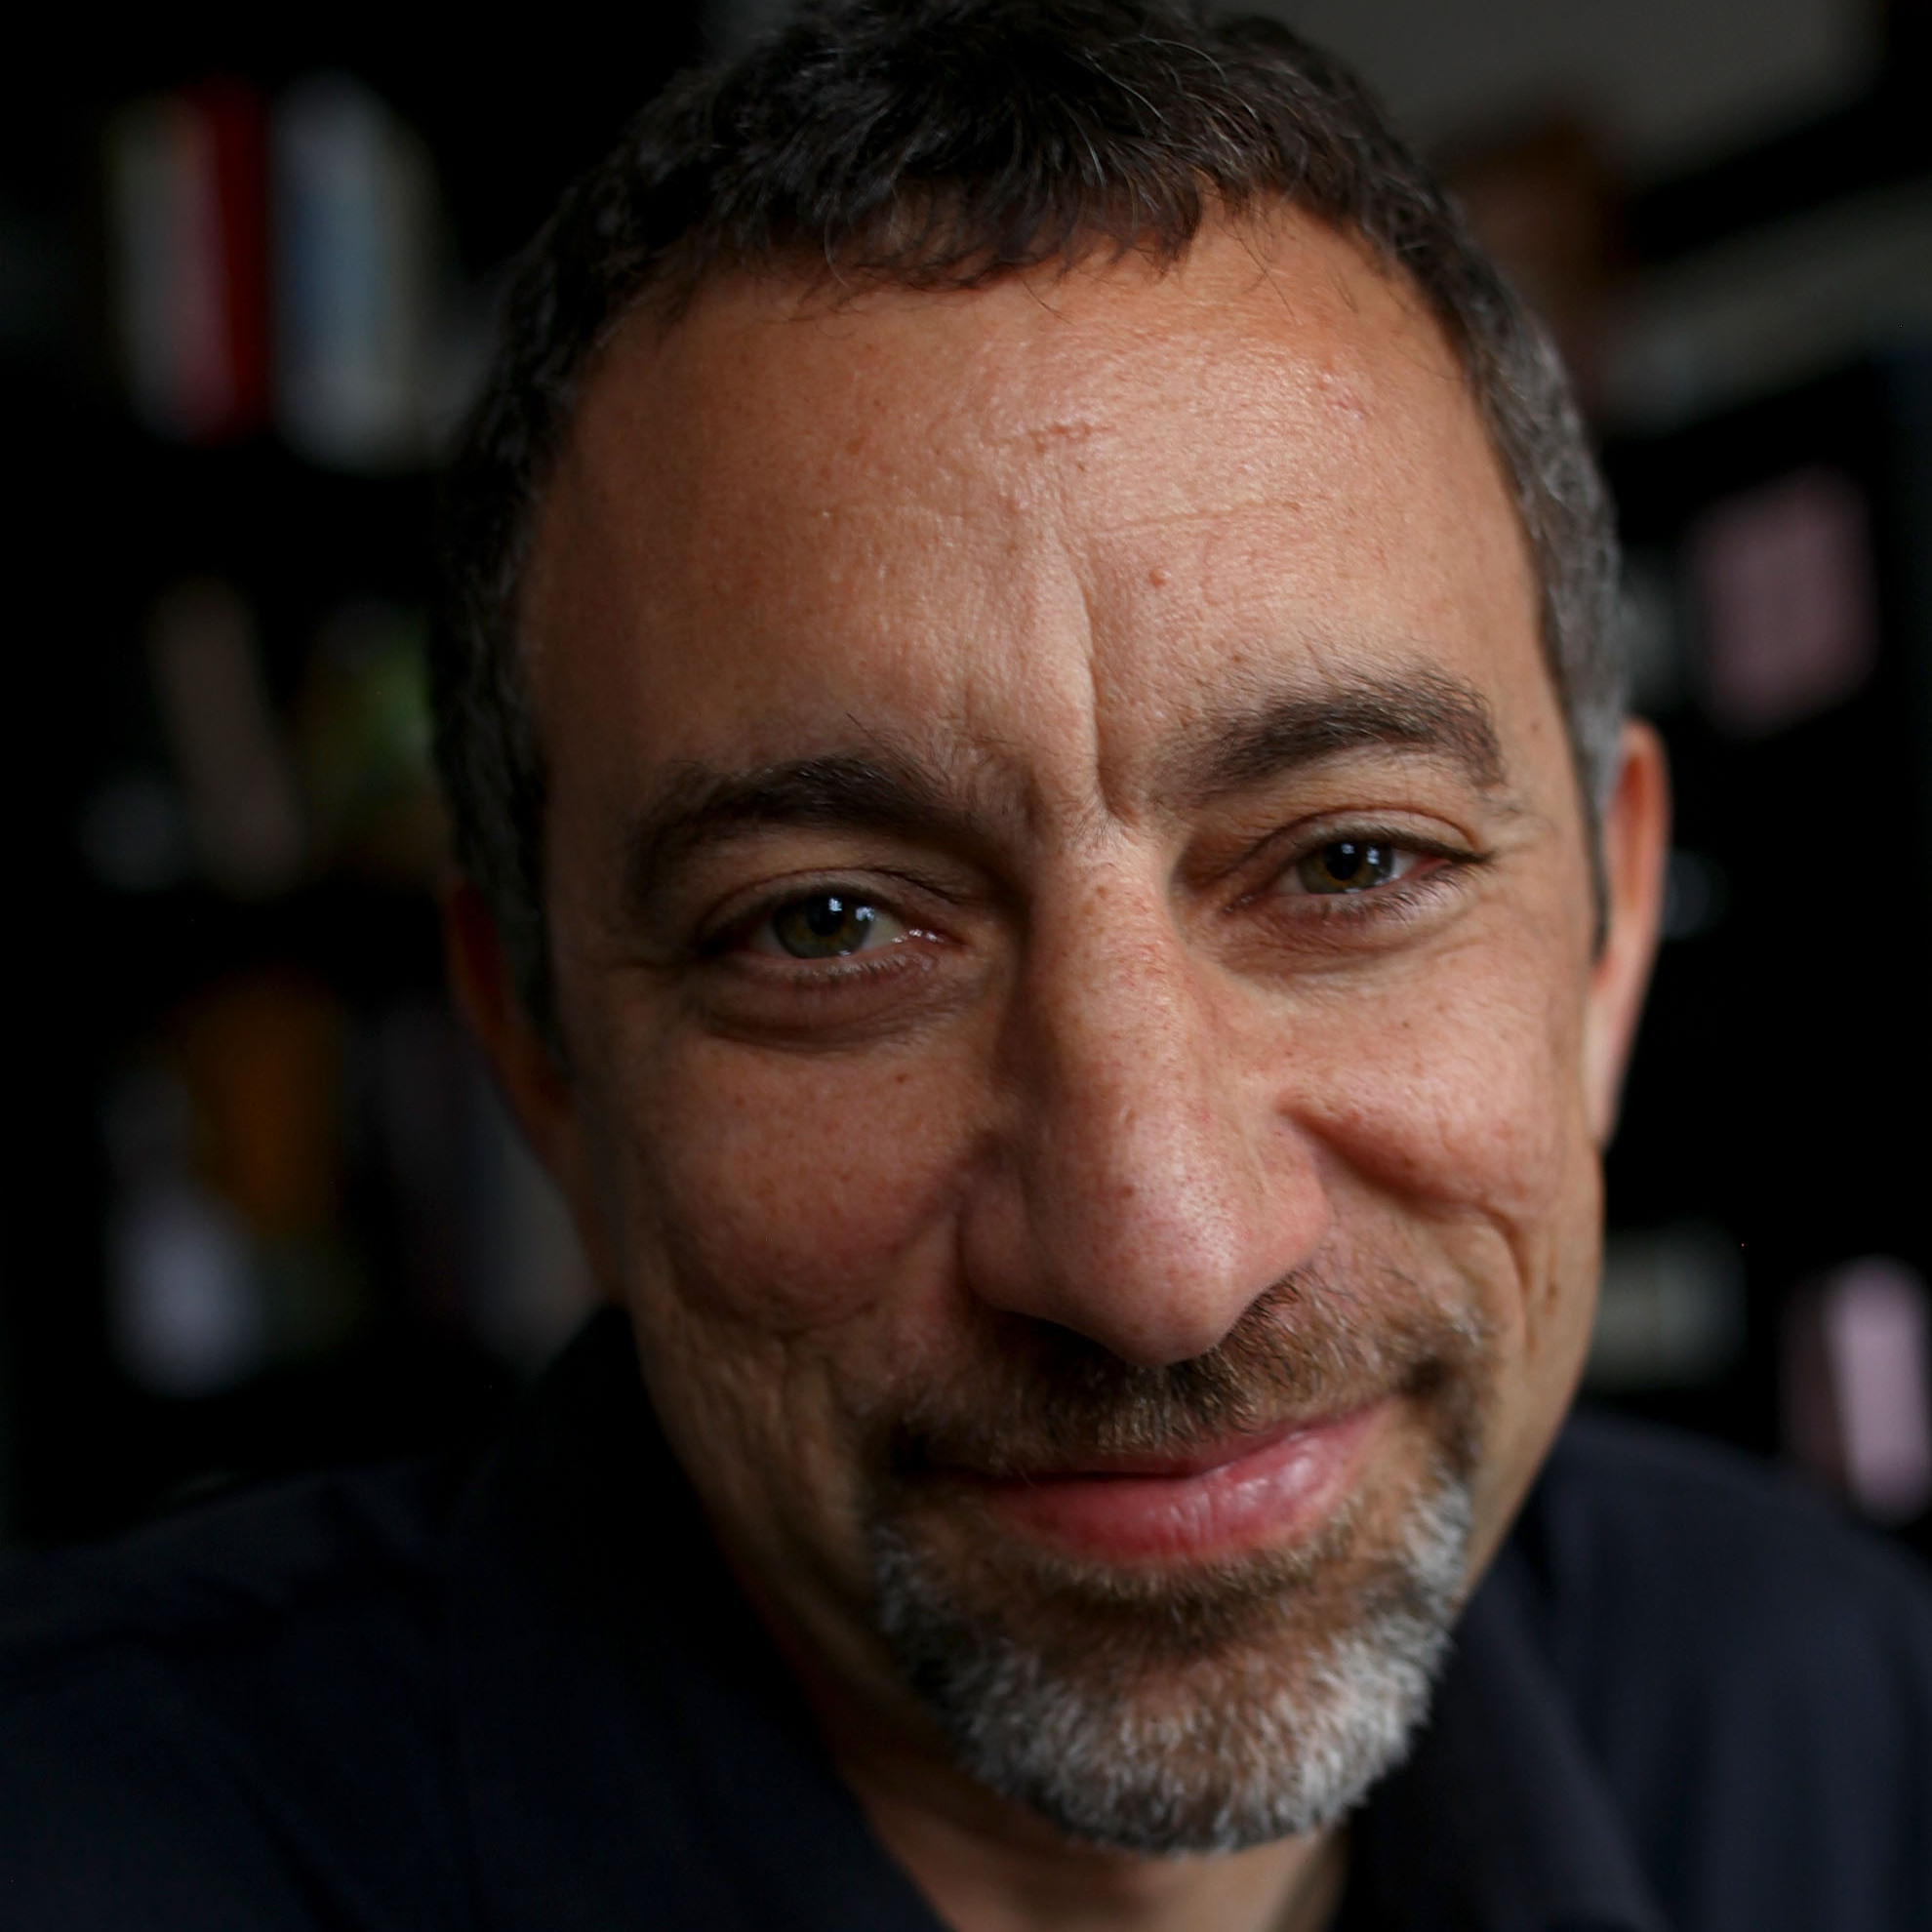 Joe Richman, founder and executive director of Radio Diaries.